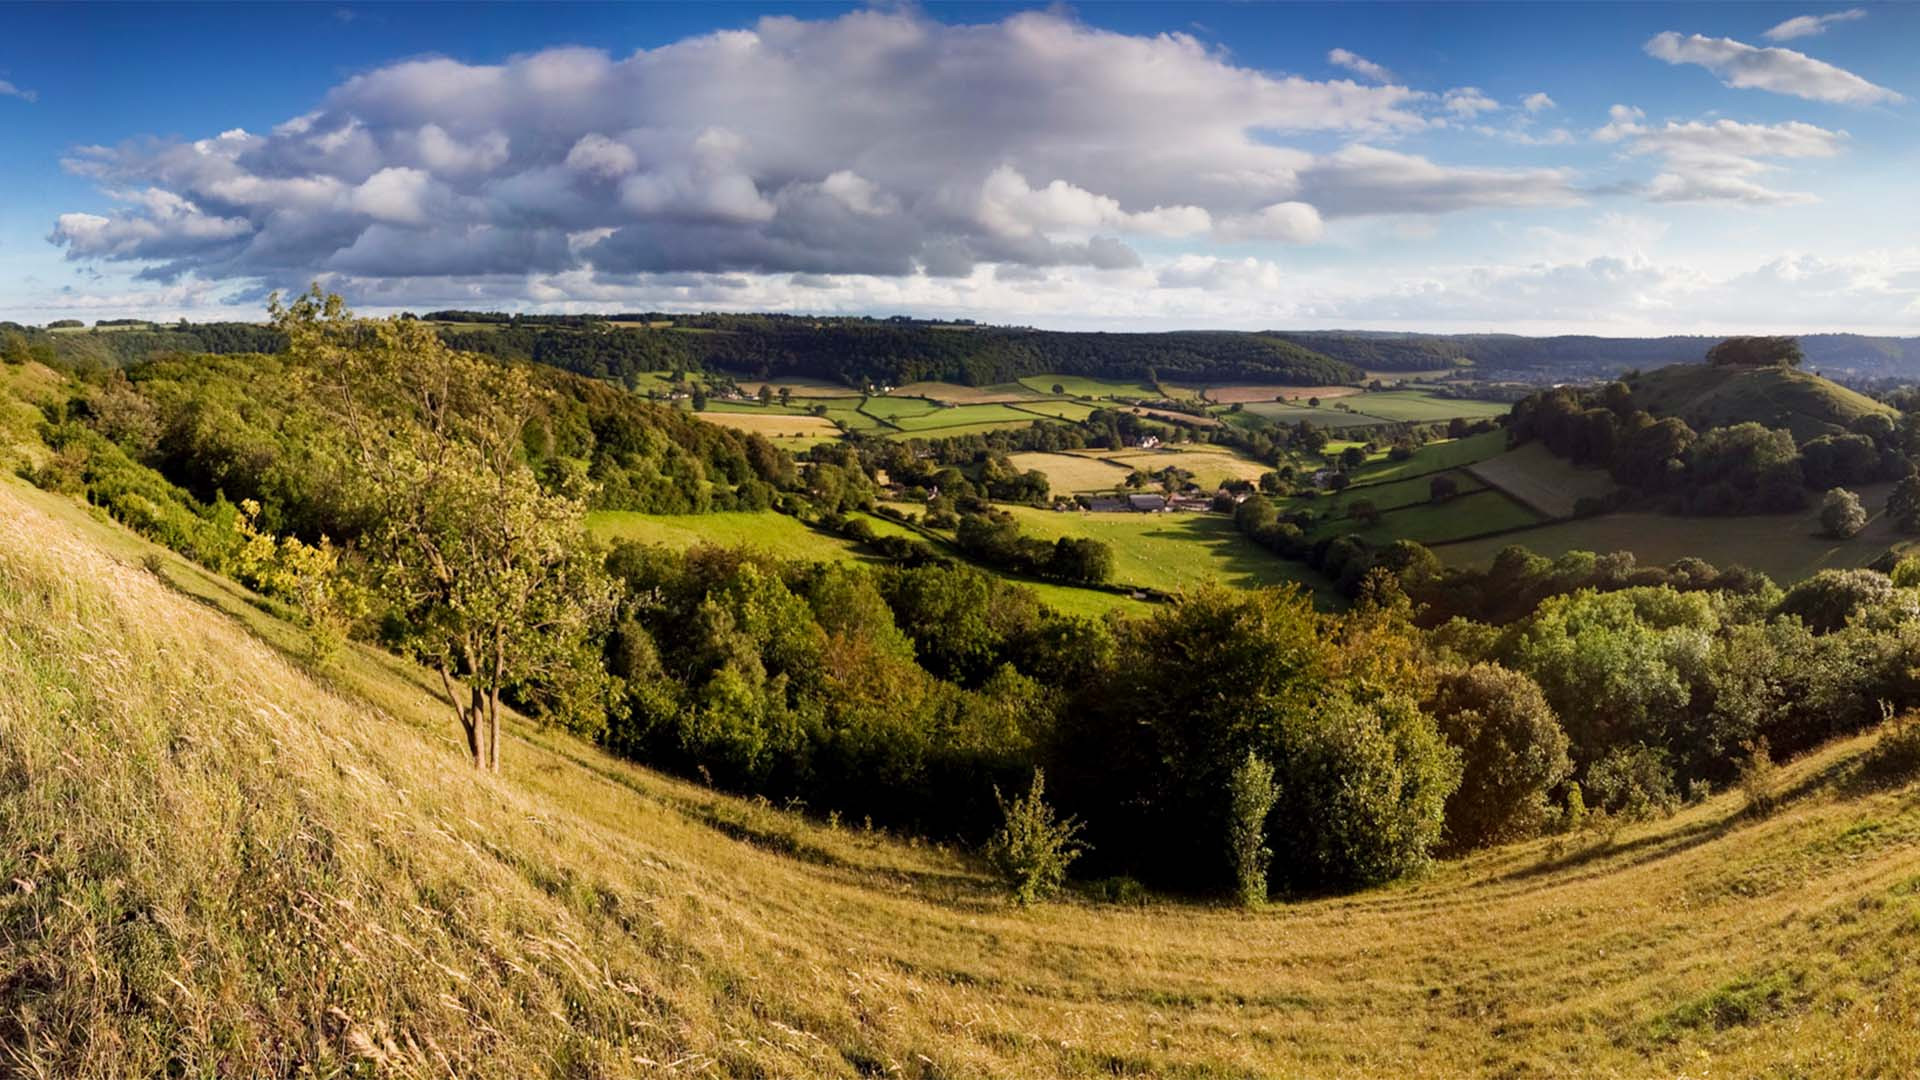 View from the edge of the Stroud valleys in the Cotswolds